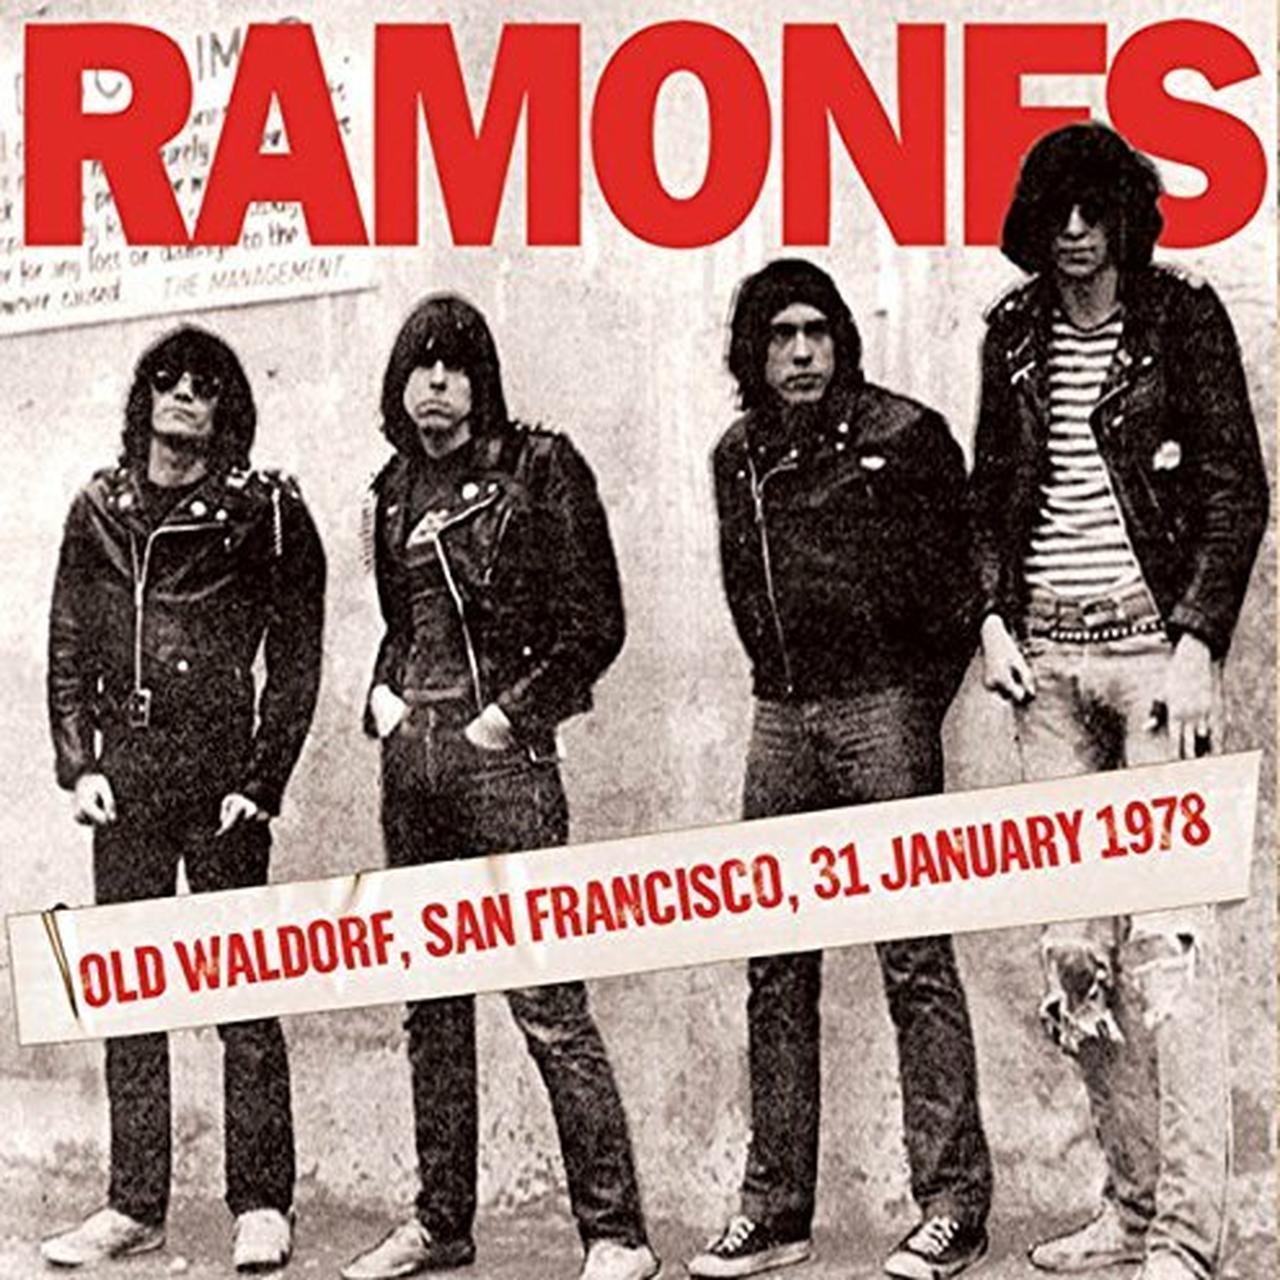 Ramones Old Waldorf San Francisco 31 January 1978 Vinyl Record